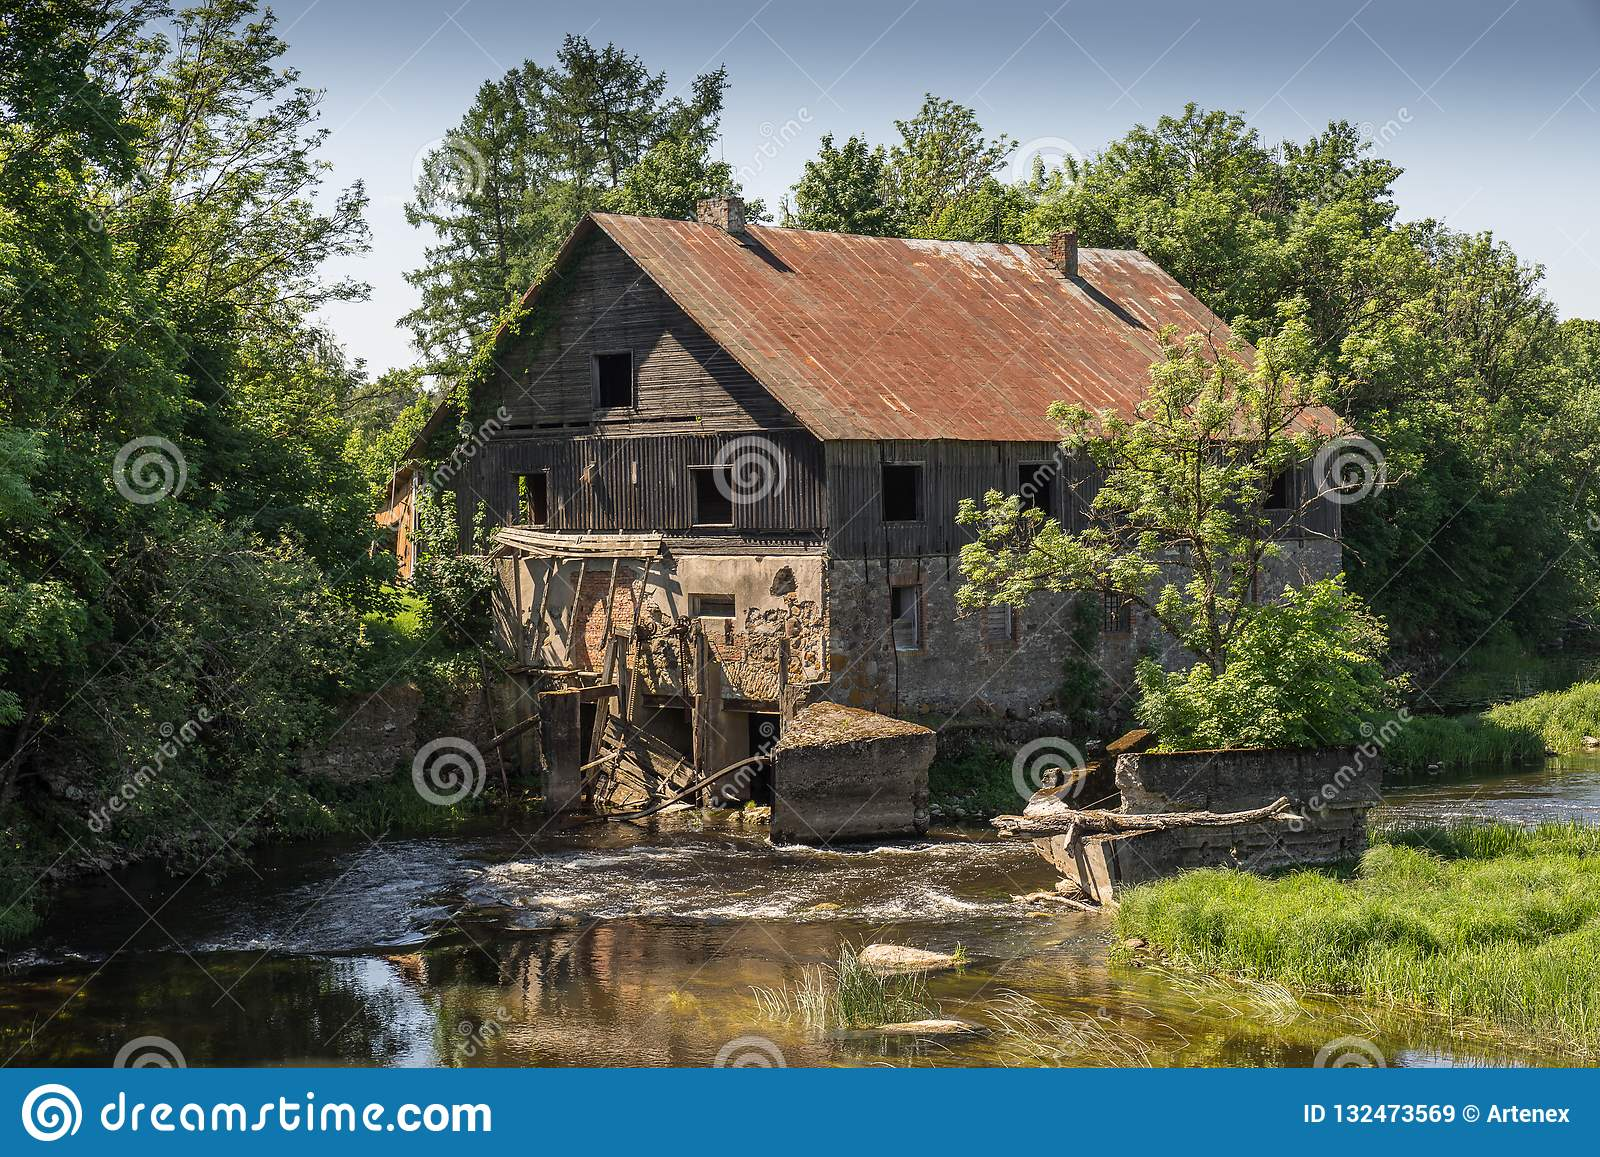 Ancient abandoned water mill surrounded by beautiful nature. House built of stone and wood, exterior walls and dilapidated bridge